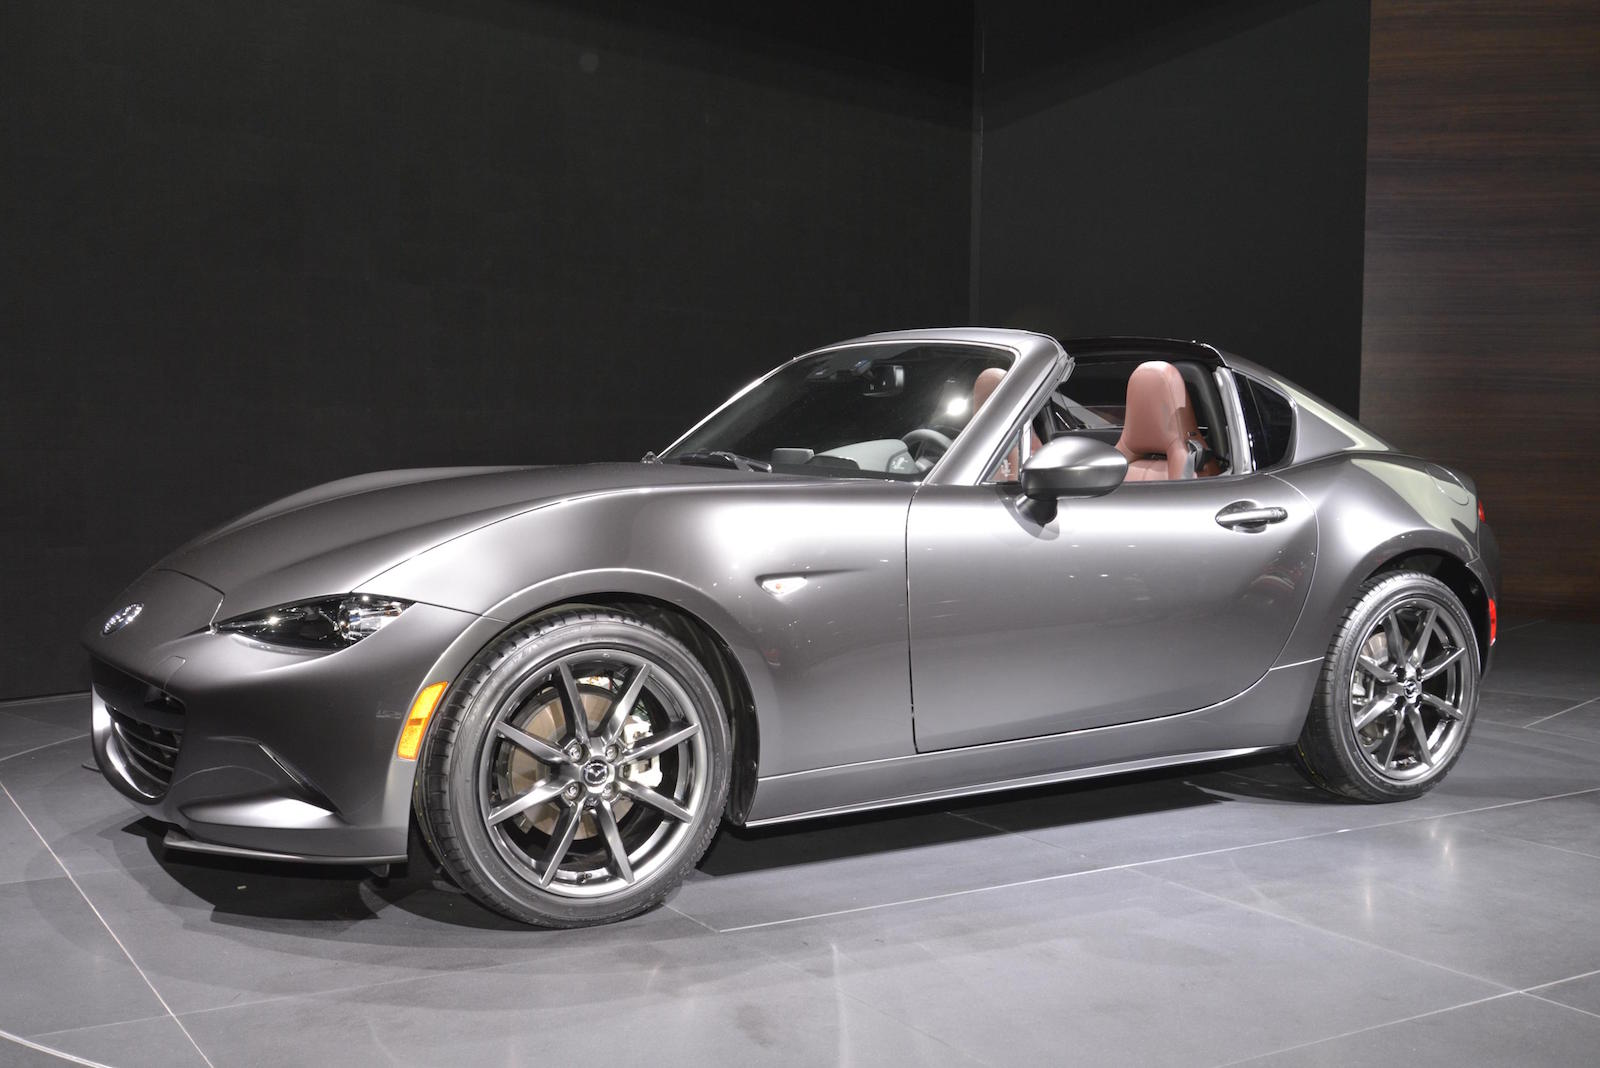 2017 Mazda MX-5 Miata RF preview